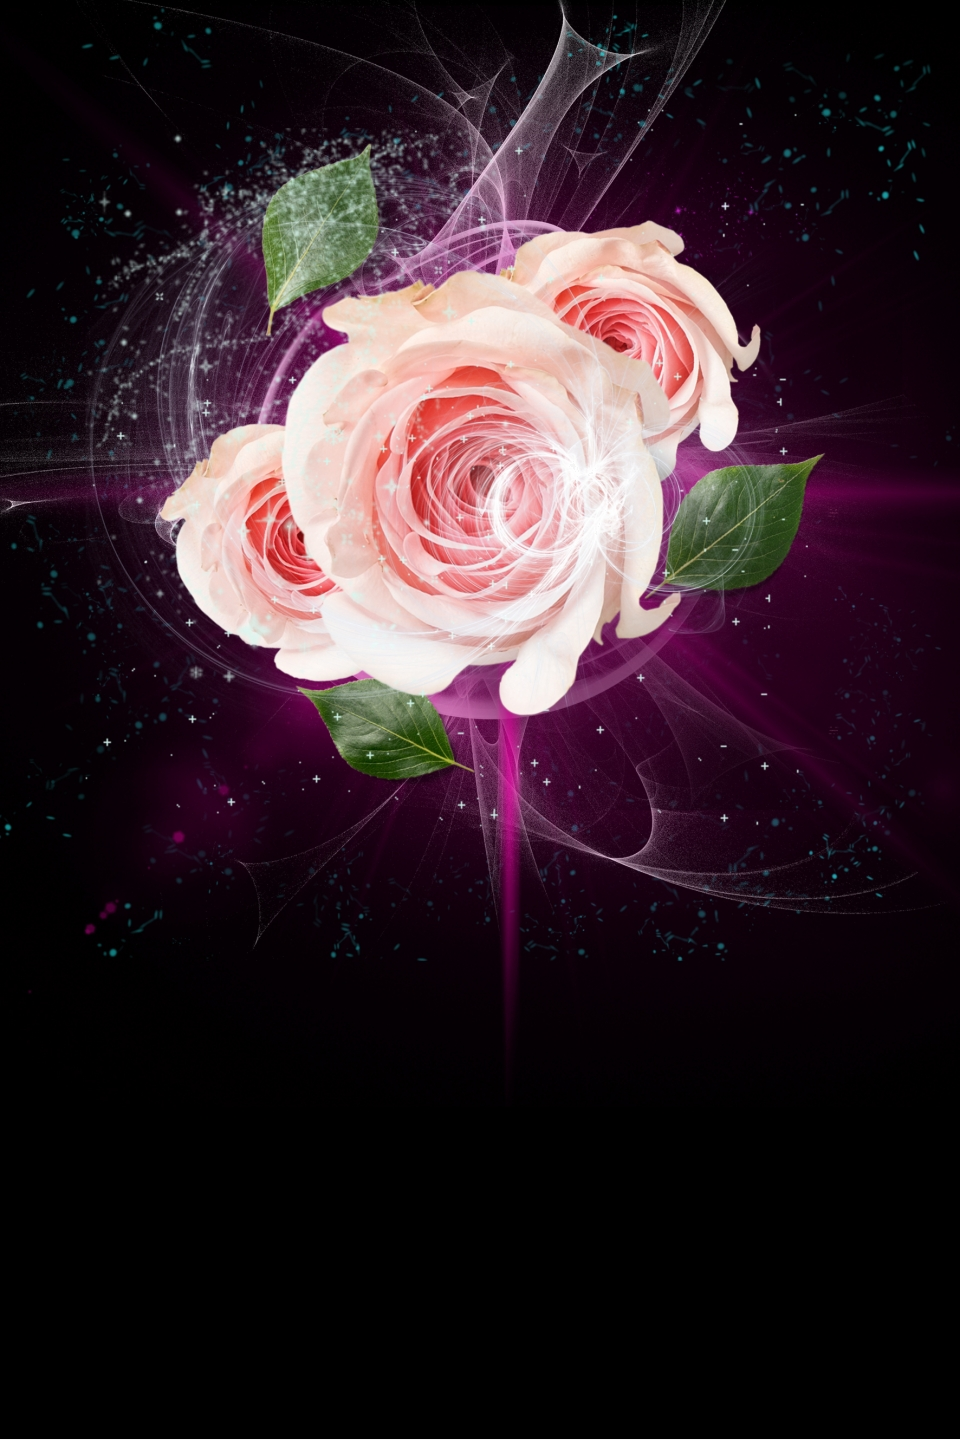 Beautiful Flower Luxury Plastic Surgery Poster Background Psd